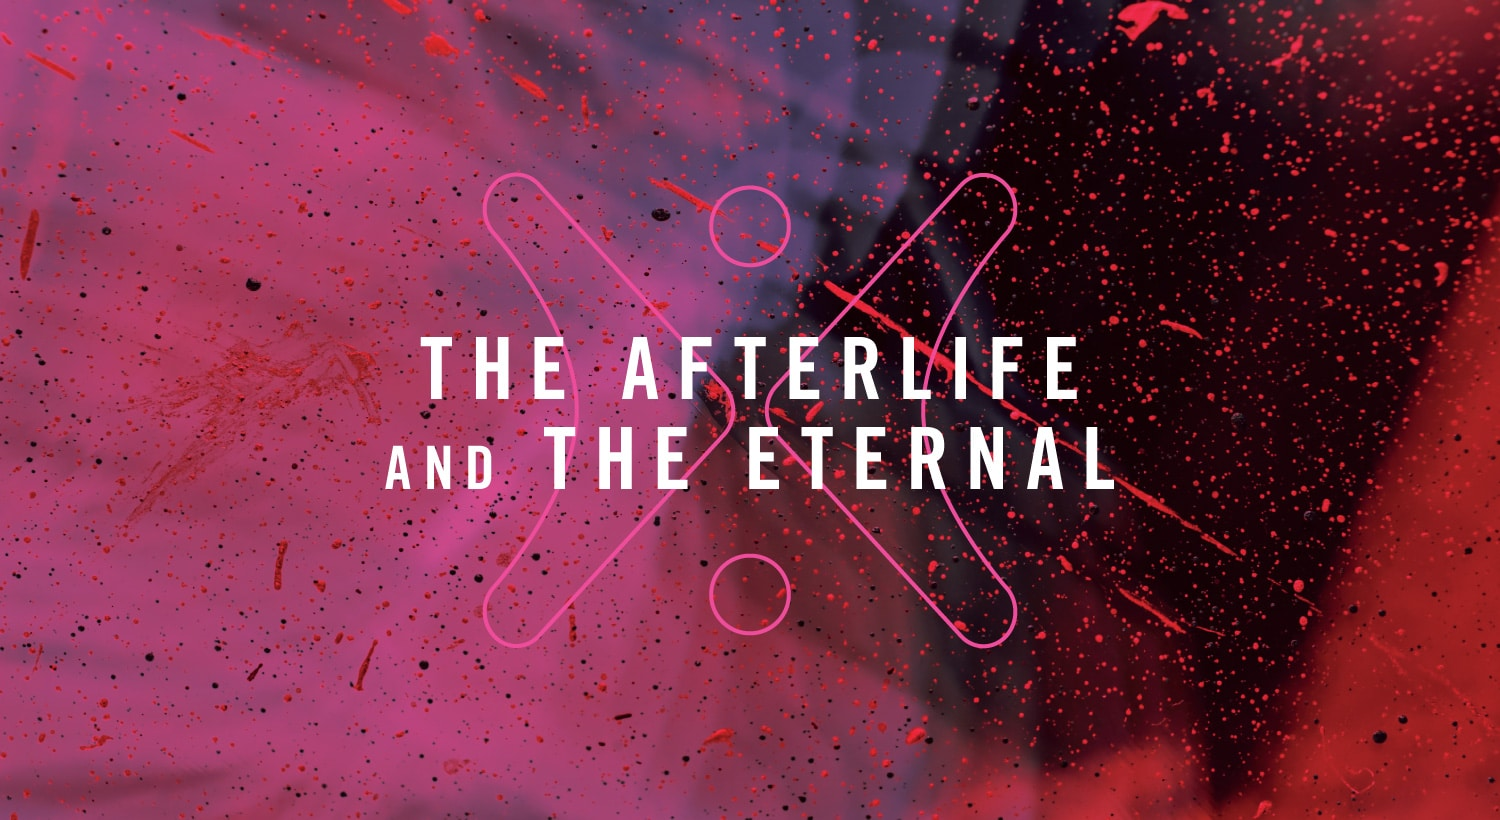 The Afterlife and the Eternal with Greg Laurie at Harvest Christian Fellowship